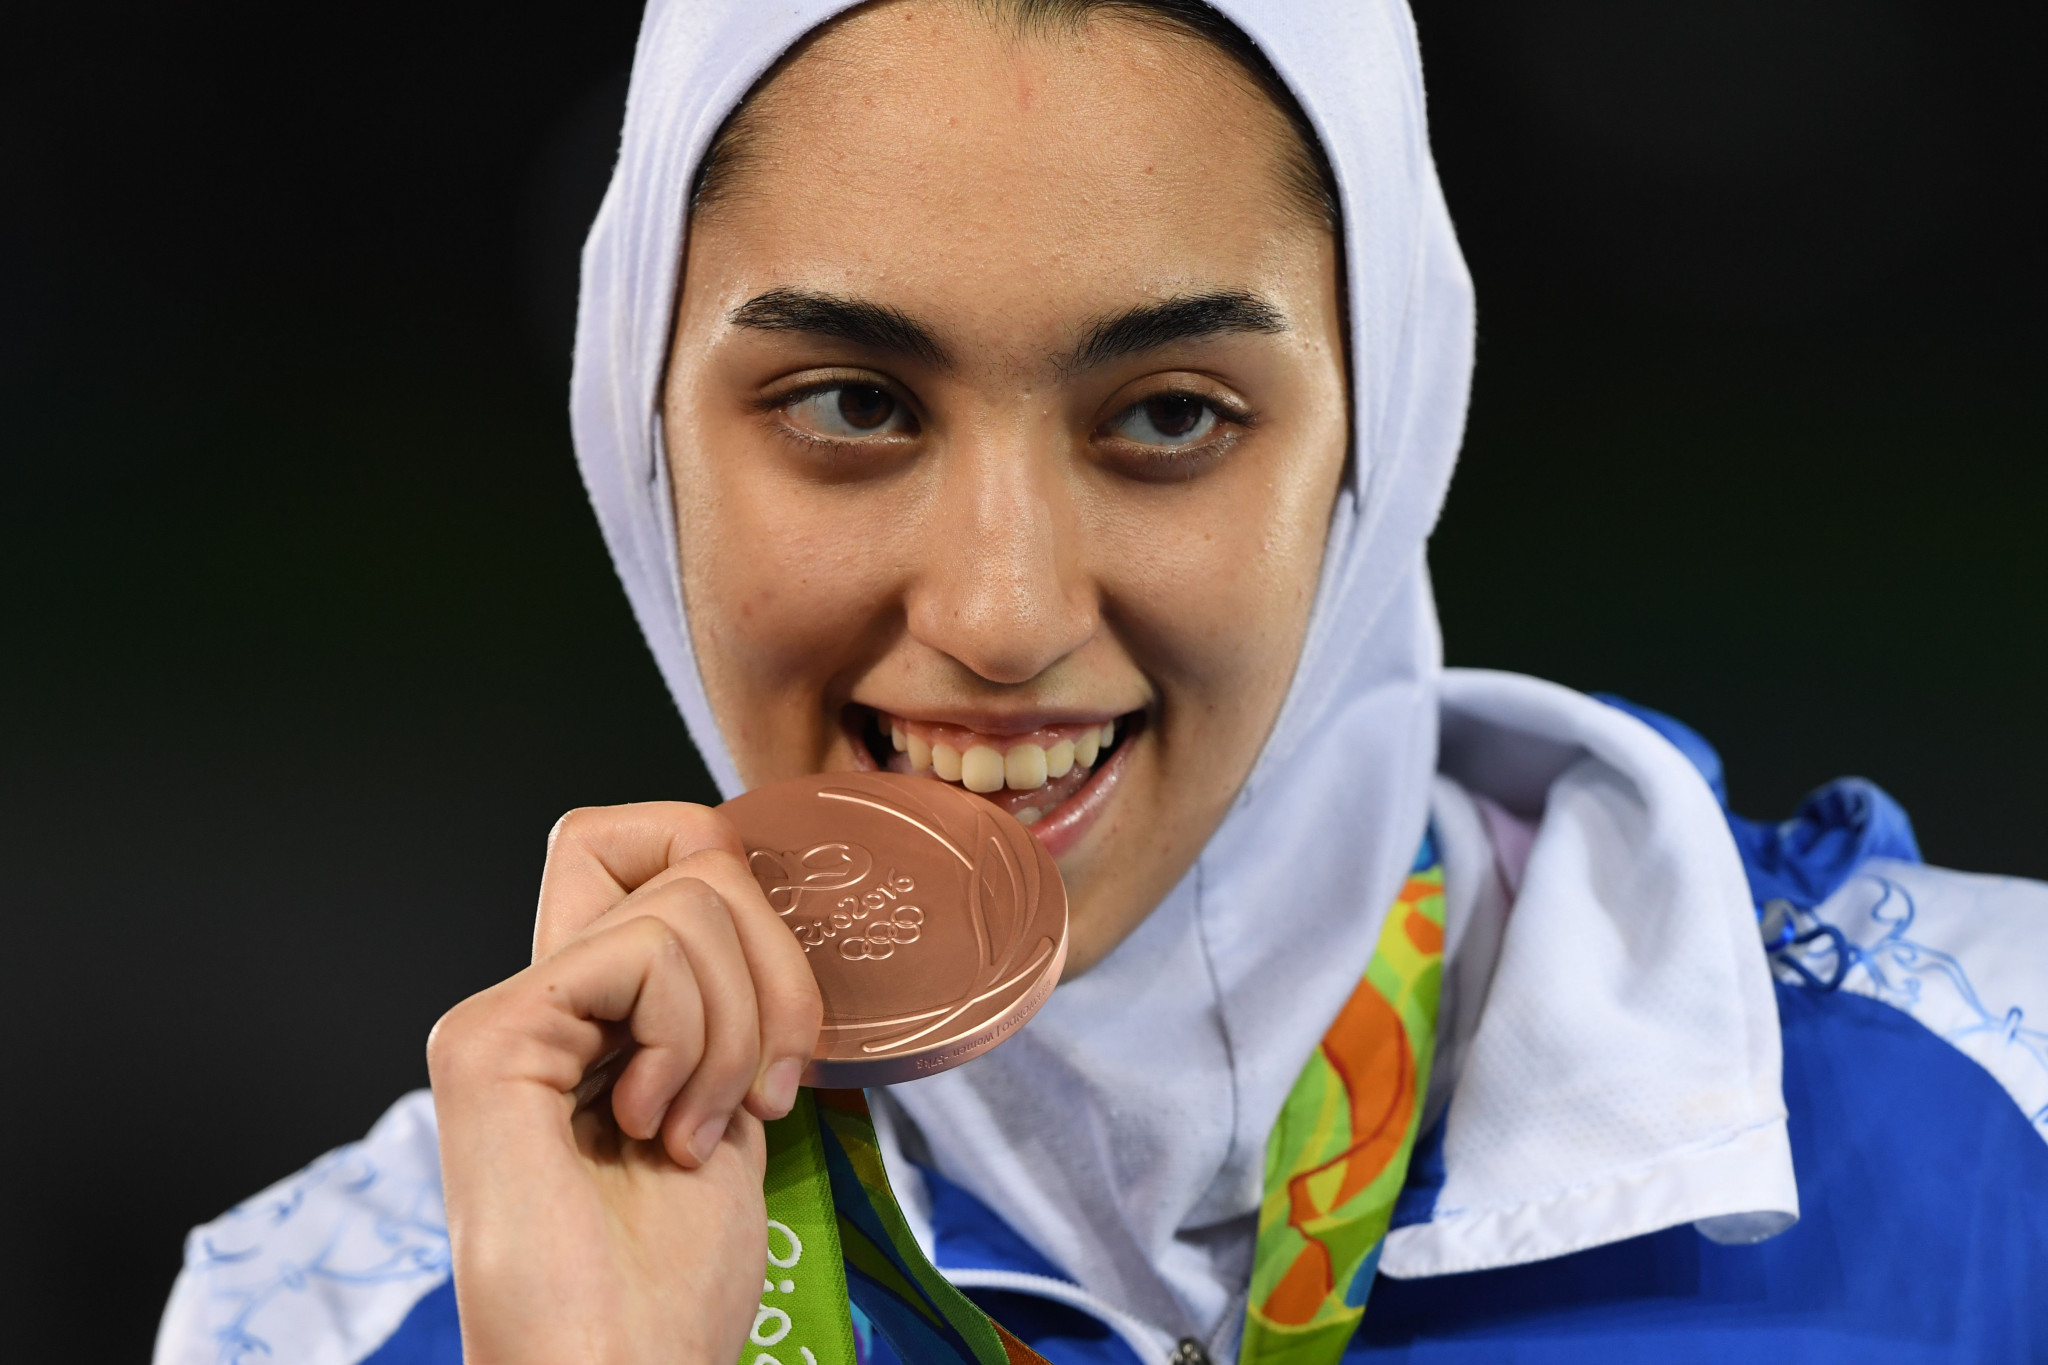 Kimia Alizadeh Zenoorin won bronze at the Rio 2016 Olympics ©Getty Images